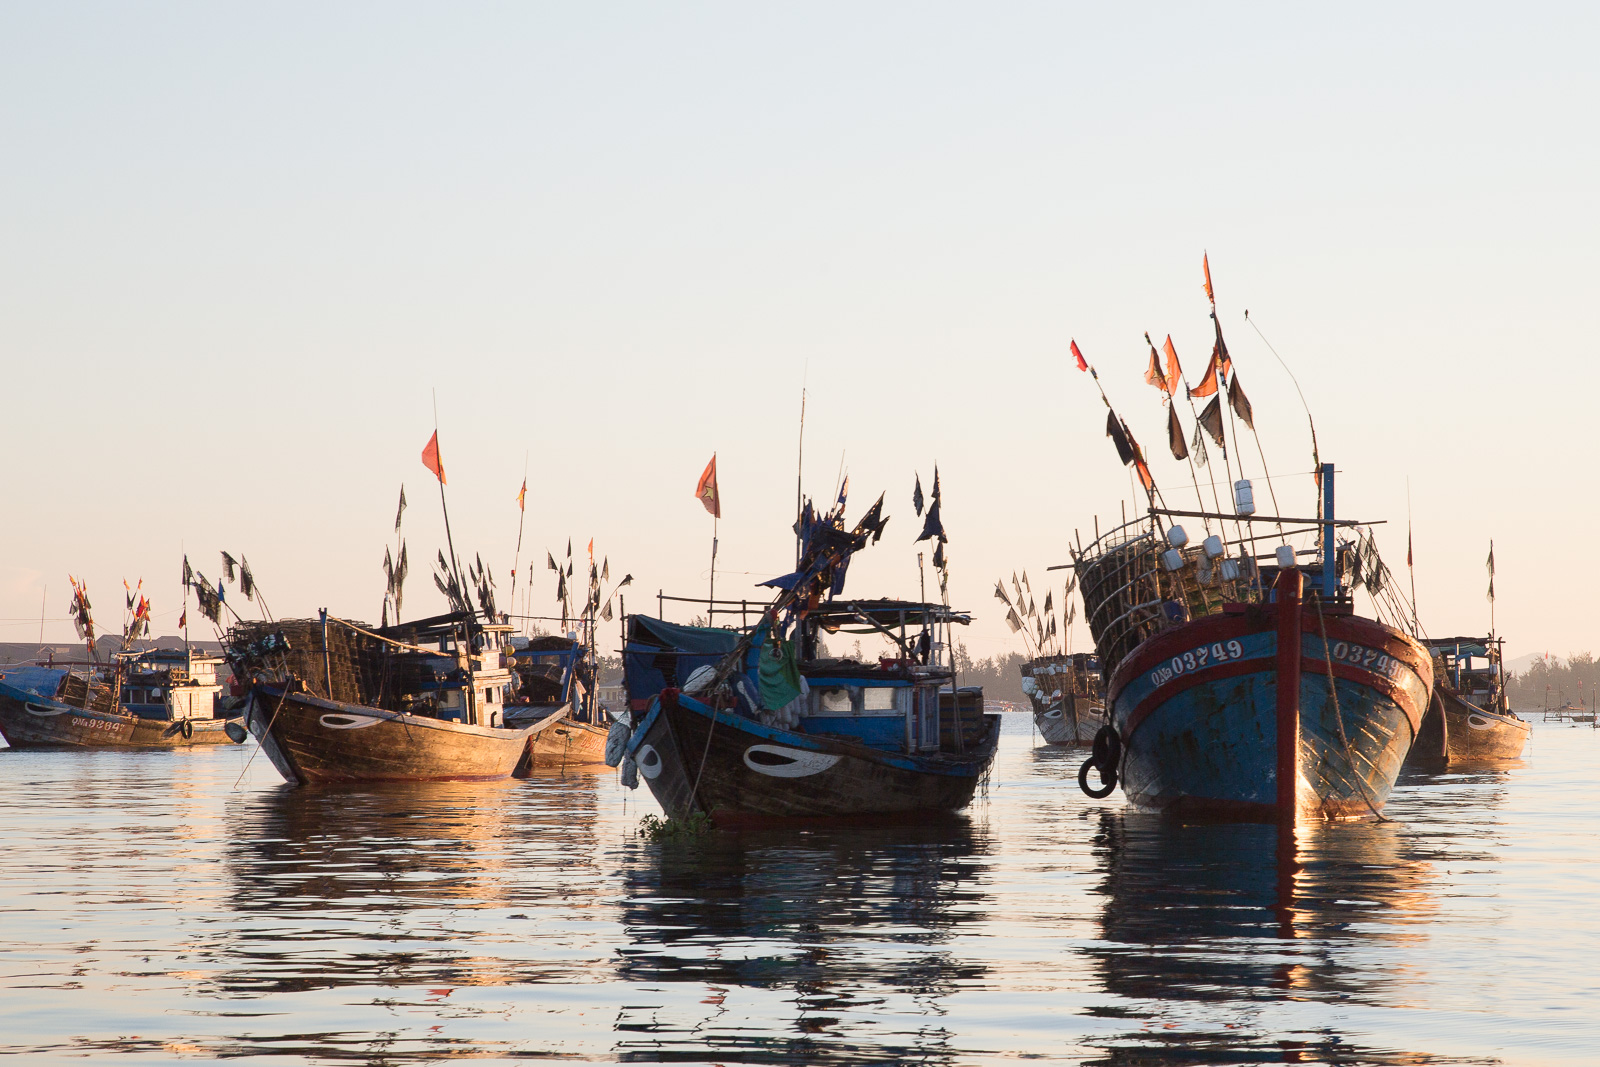 Many boats in Vietnam have two stylised eyes painted on either side of the bow.